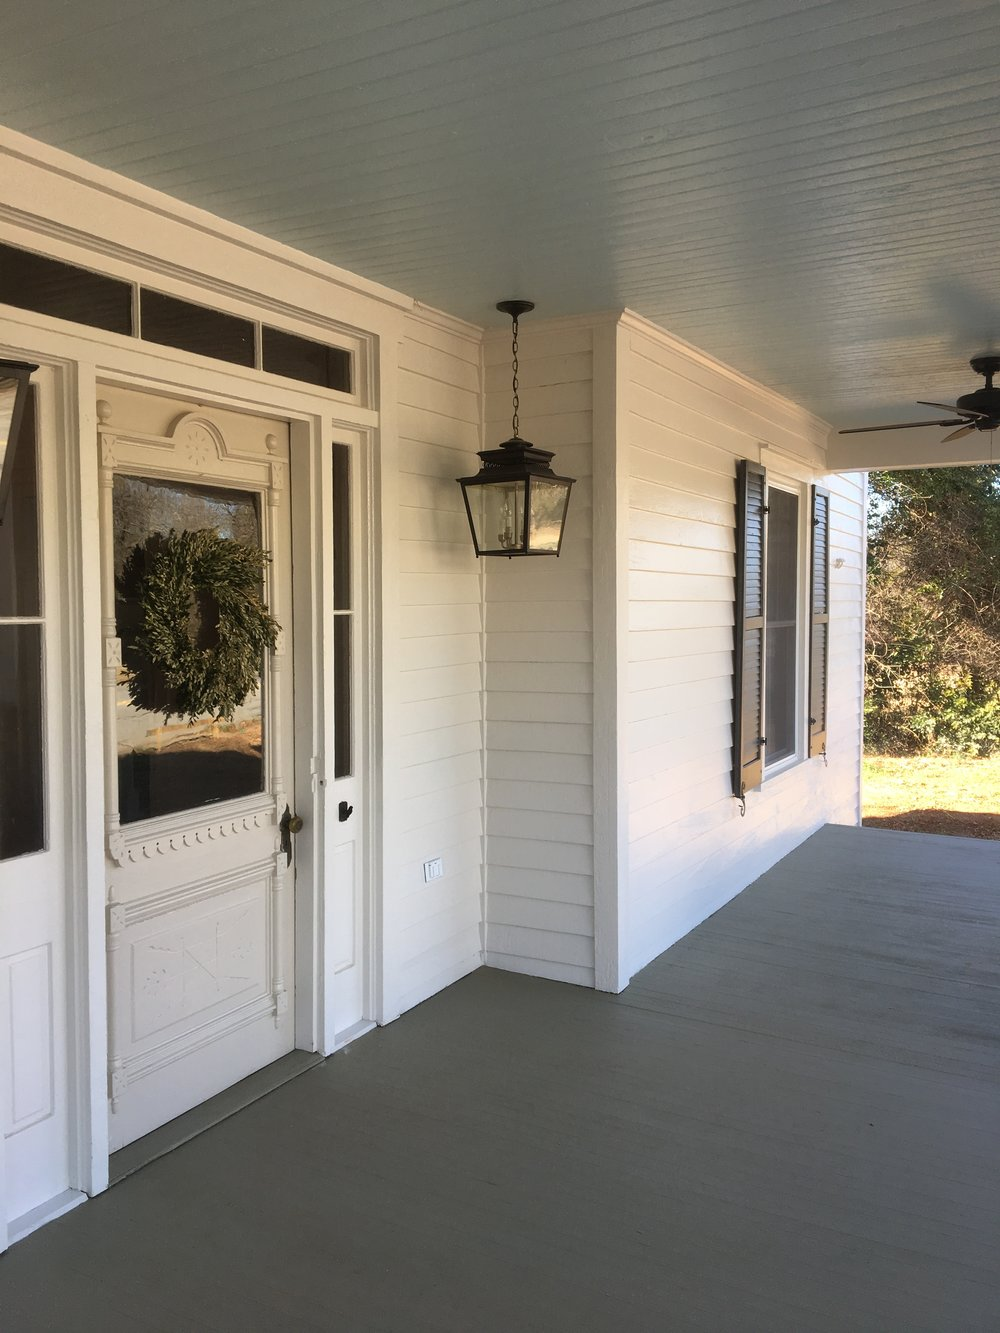 The Shealy House Tfo Contracting Solutions How To Repair A Doorknob Oldhouse Online Hard Believe This Is Same Porch Thanks Efforts Of Don Martin Martins Commercial And Industrial His Team What Was Once Chipping